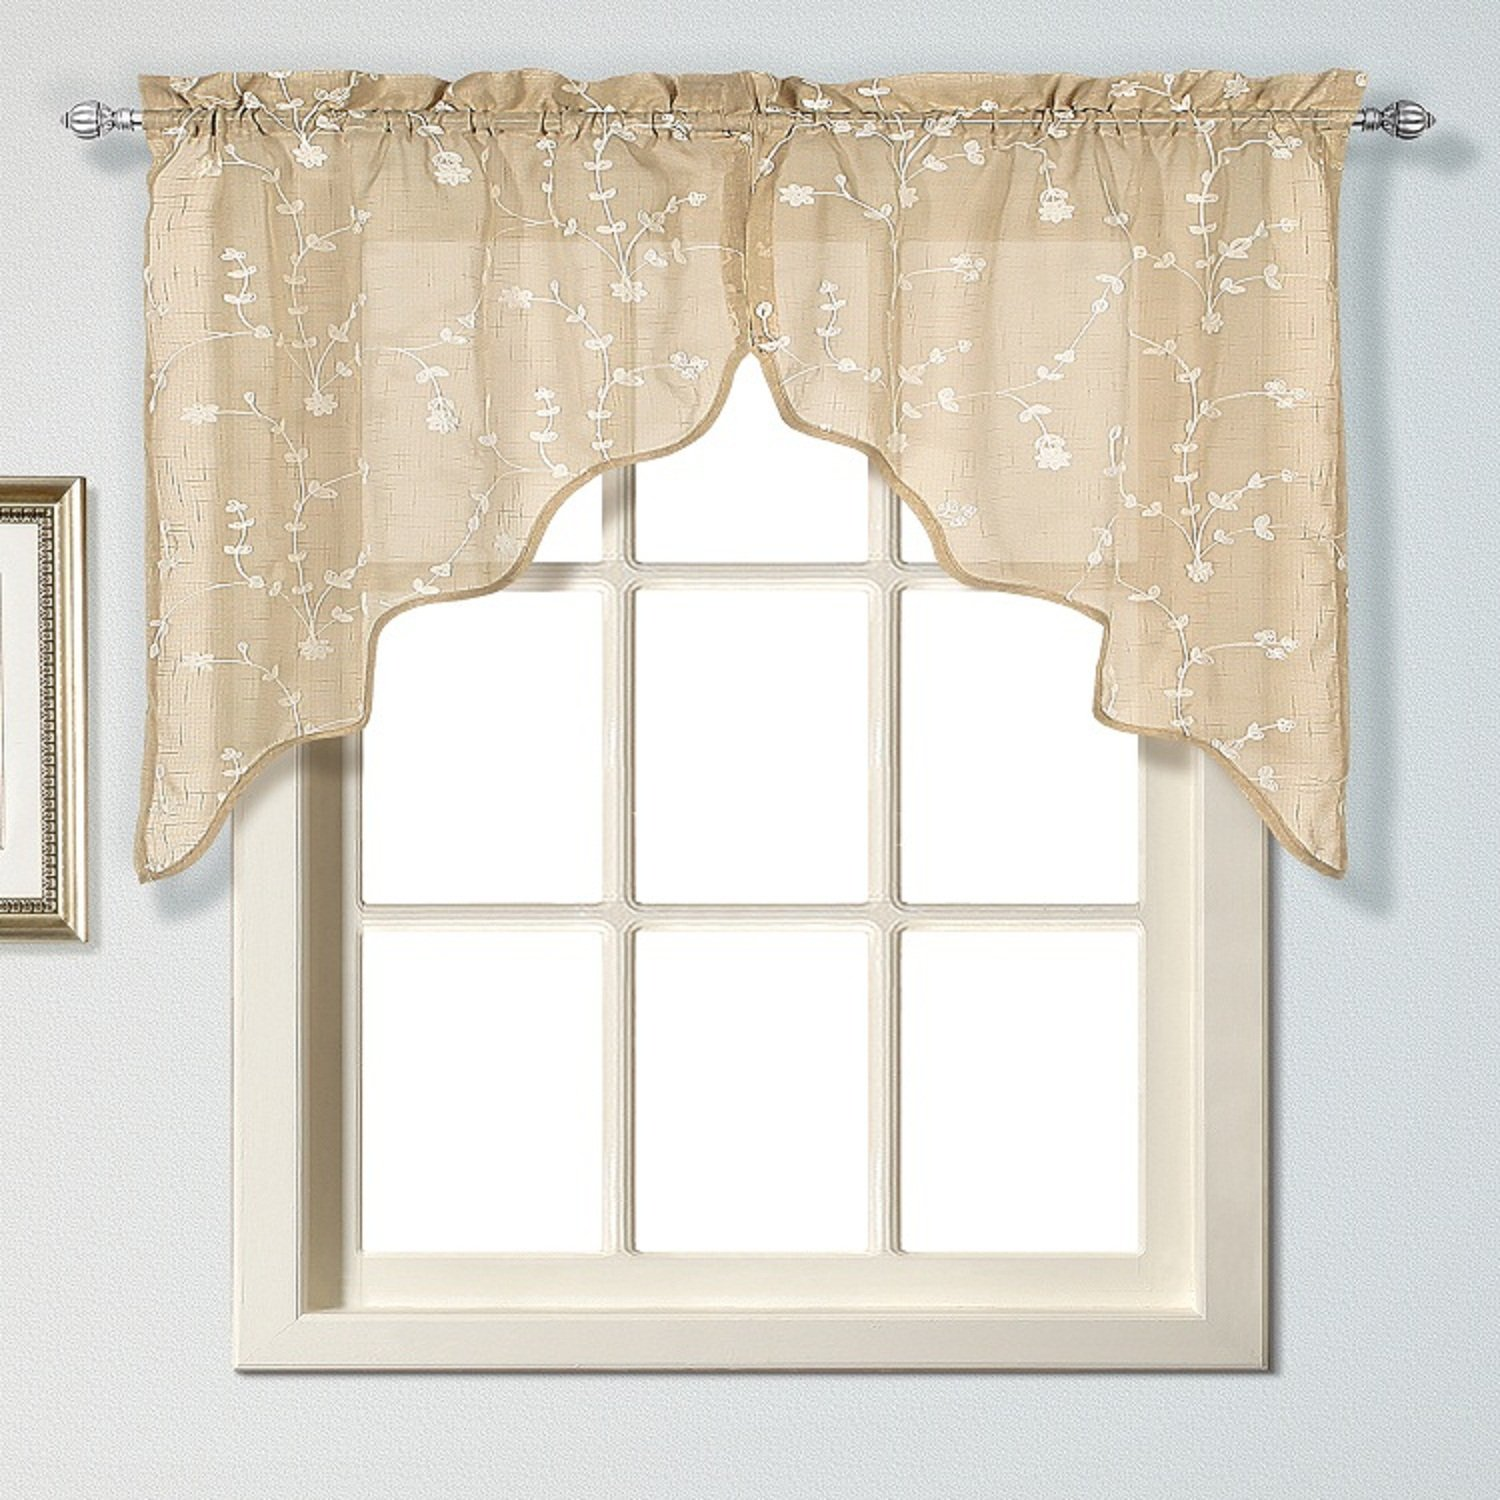 Amazon.com: United Curtain Savannah Swags, 51 By 38 Inch, Taupe, Set Of 2:  Home U0026 Kitchen